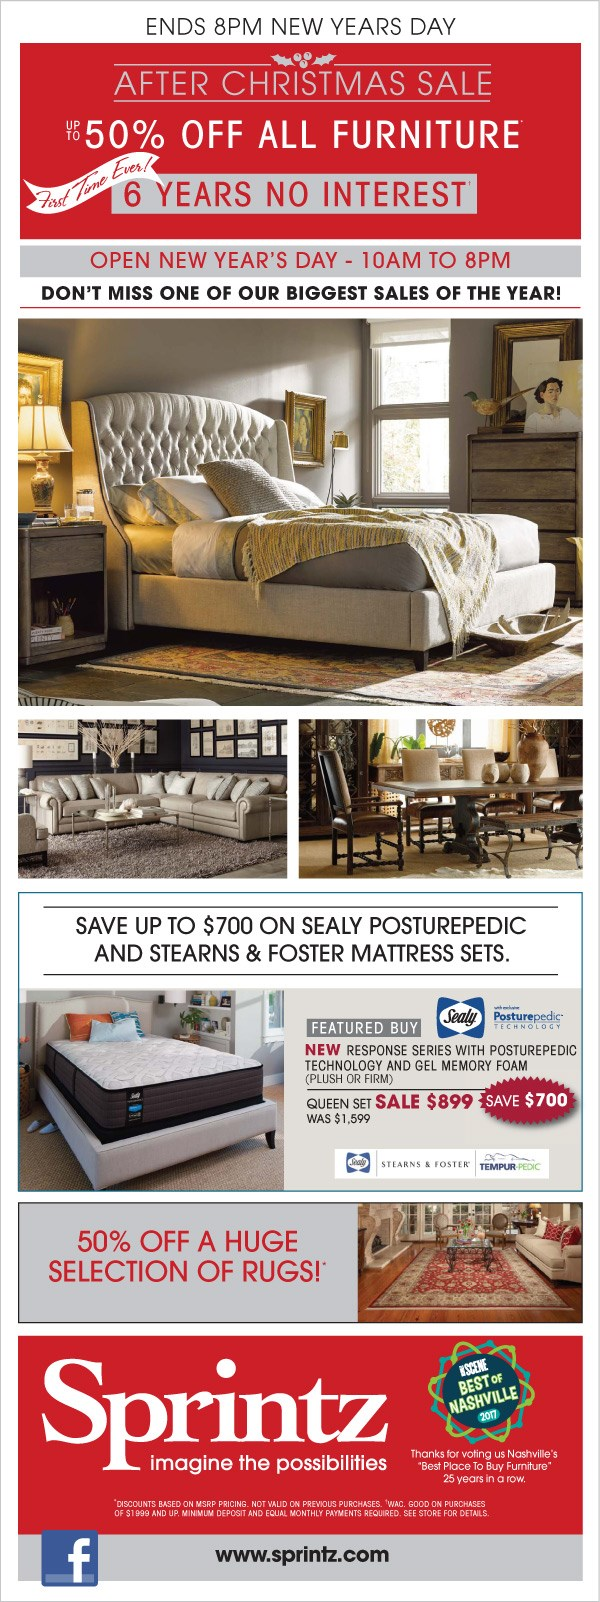 Shop Sprintz Furniture For The Best Sales And Deals On Furniture In The  Nashville, Franklin, And Greater Tennessee Area.